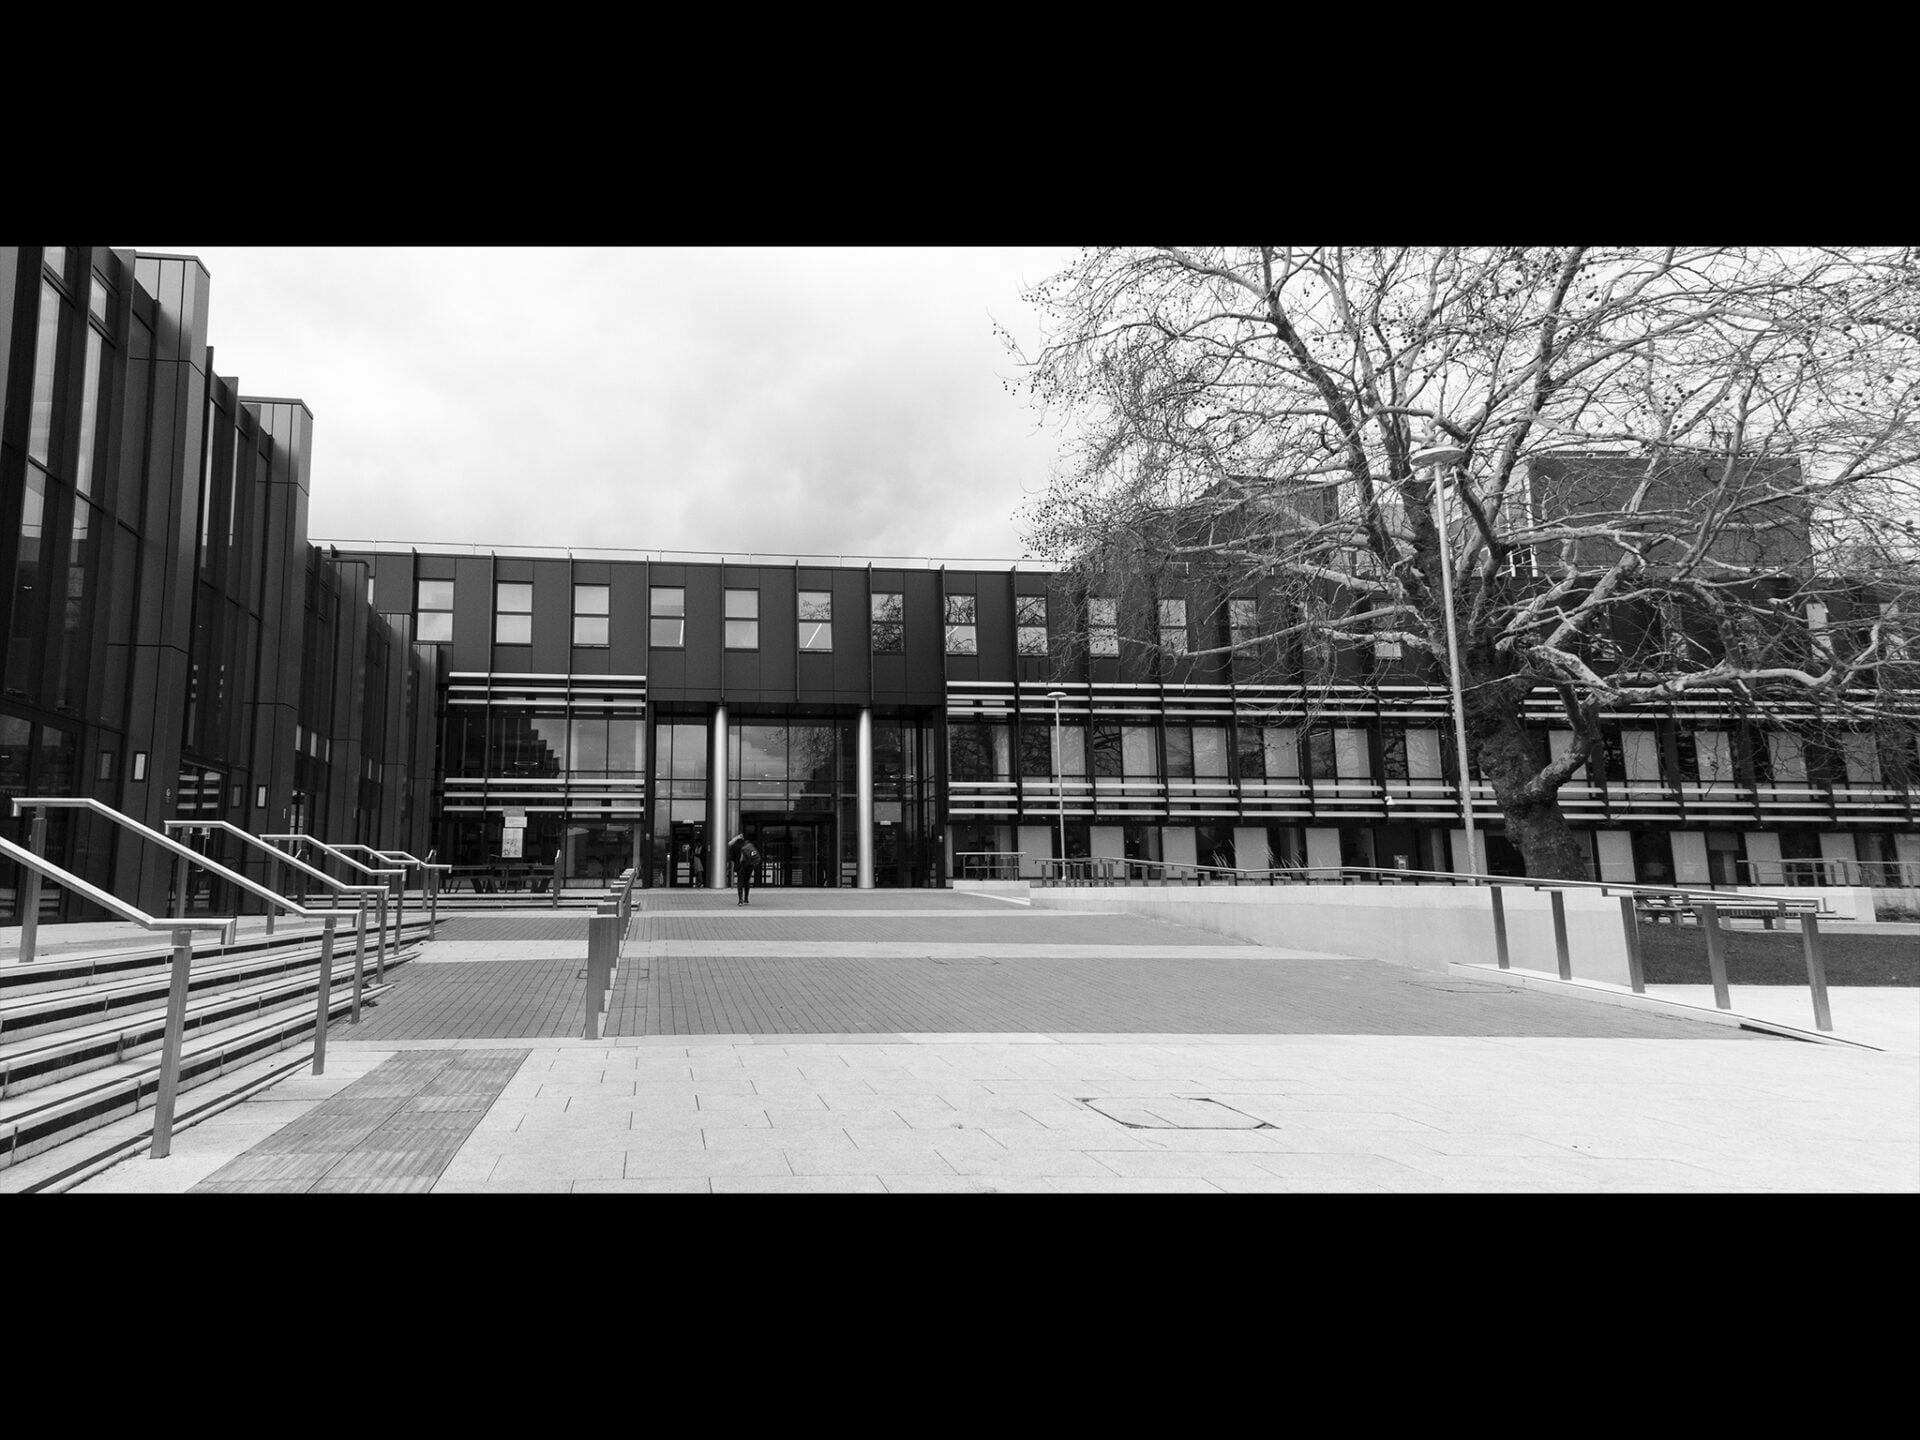 Black and white image of the front of Oxford Brookes University